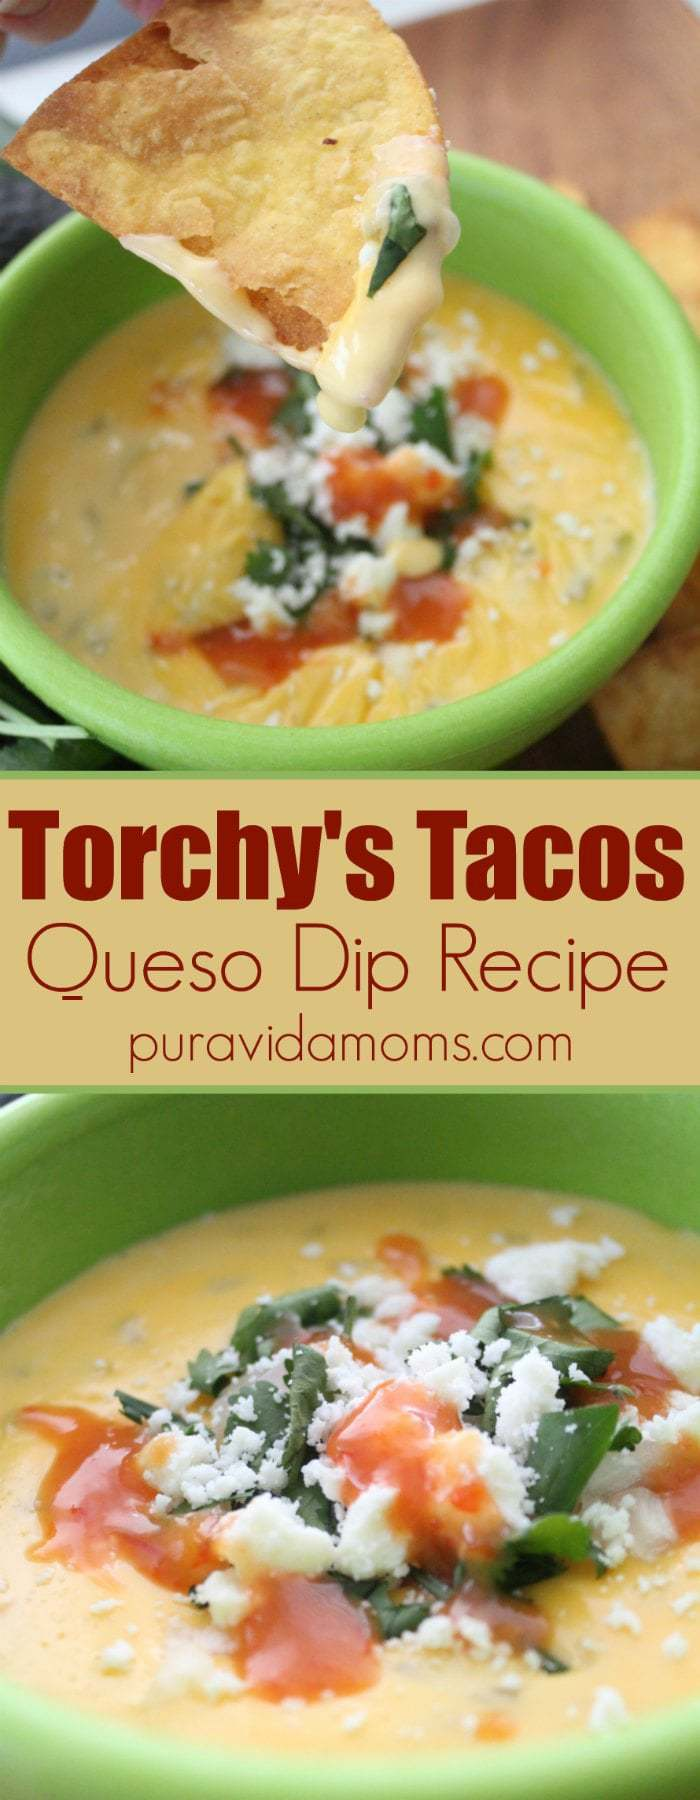 Torchy's Tacos Queso Dip Recipe